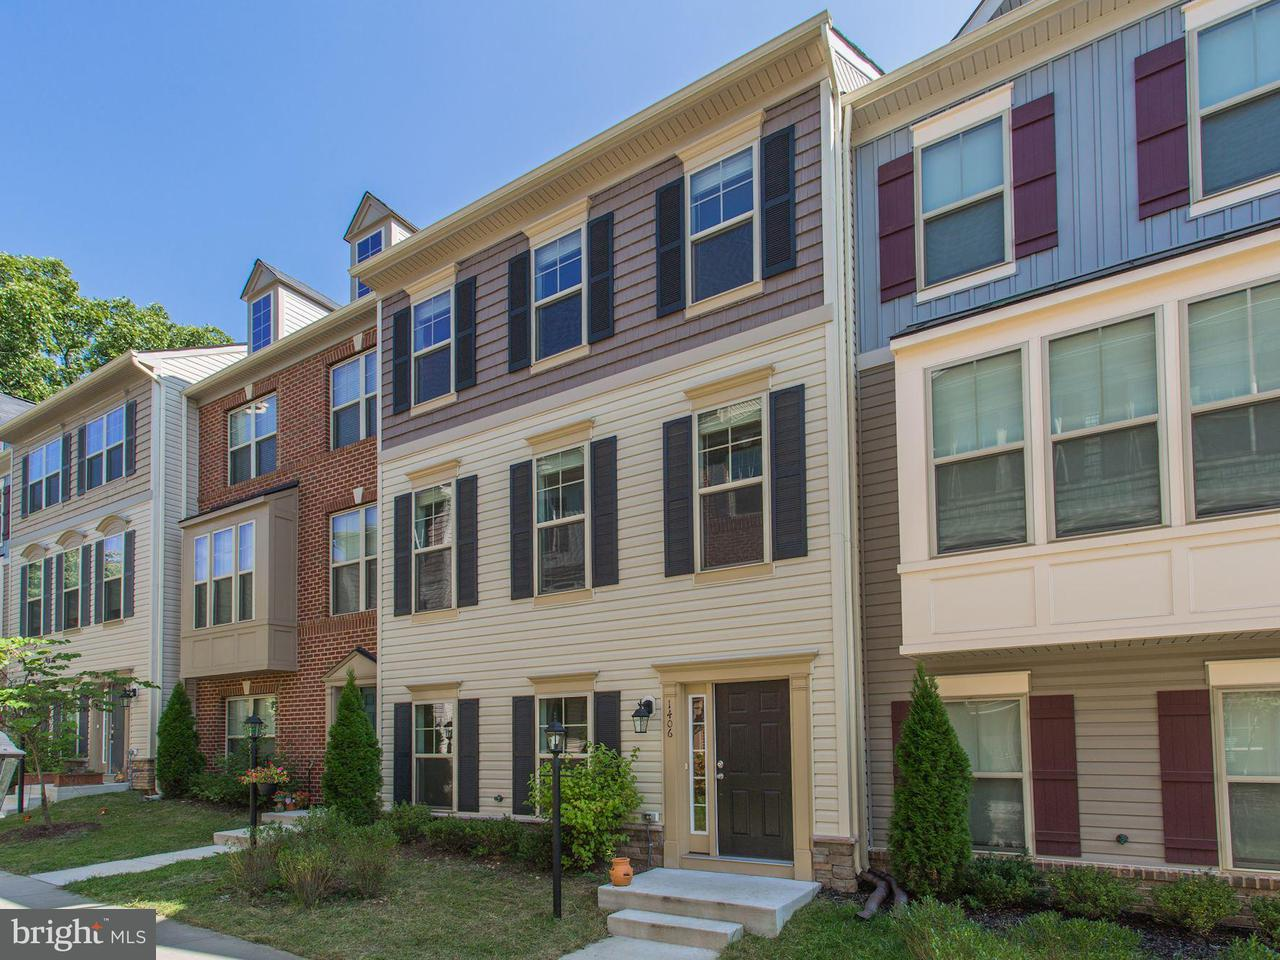 Townhouse for Sale at 1406 OCCOQUAN HEIGHTS Court 1406 OCCOQUAN HEIGHTS Court Occoquan, Virginia 22125 United States